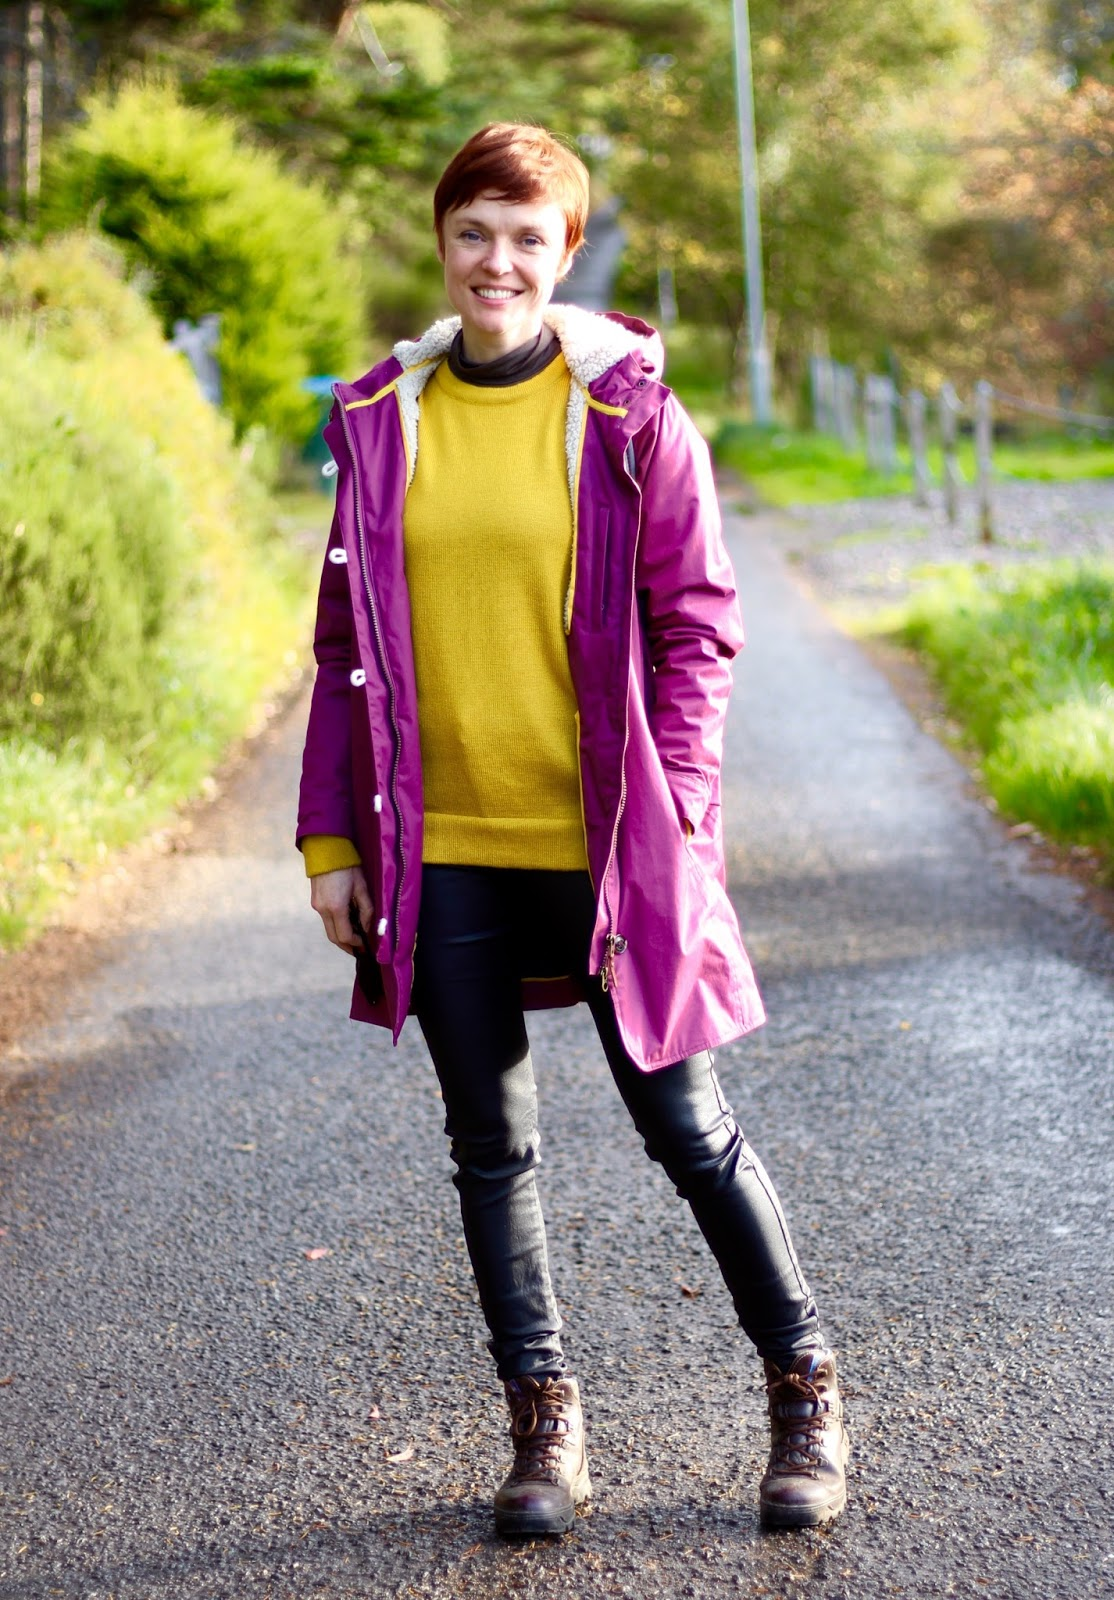 Lighthouse waterproof jacket, Kettlewell yellow jumper, coated jeans & Walking boots | Fake Fabulous